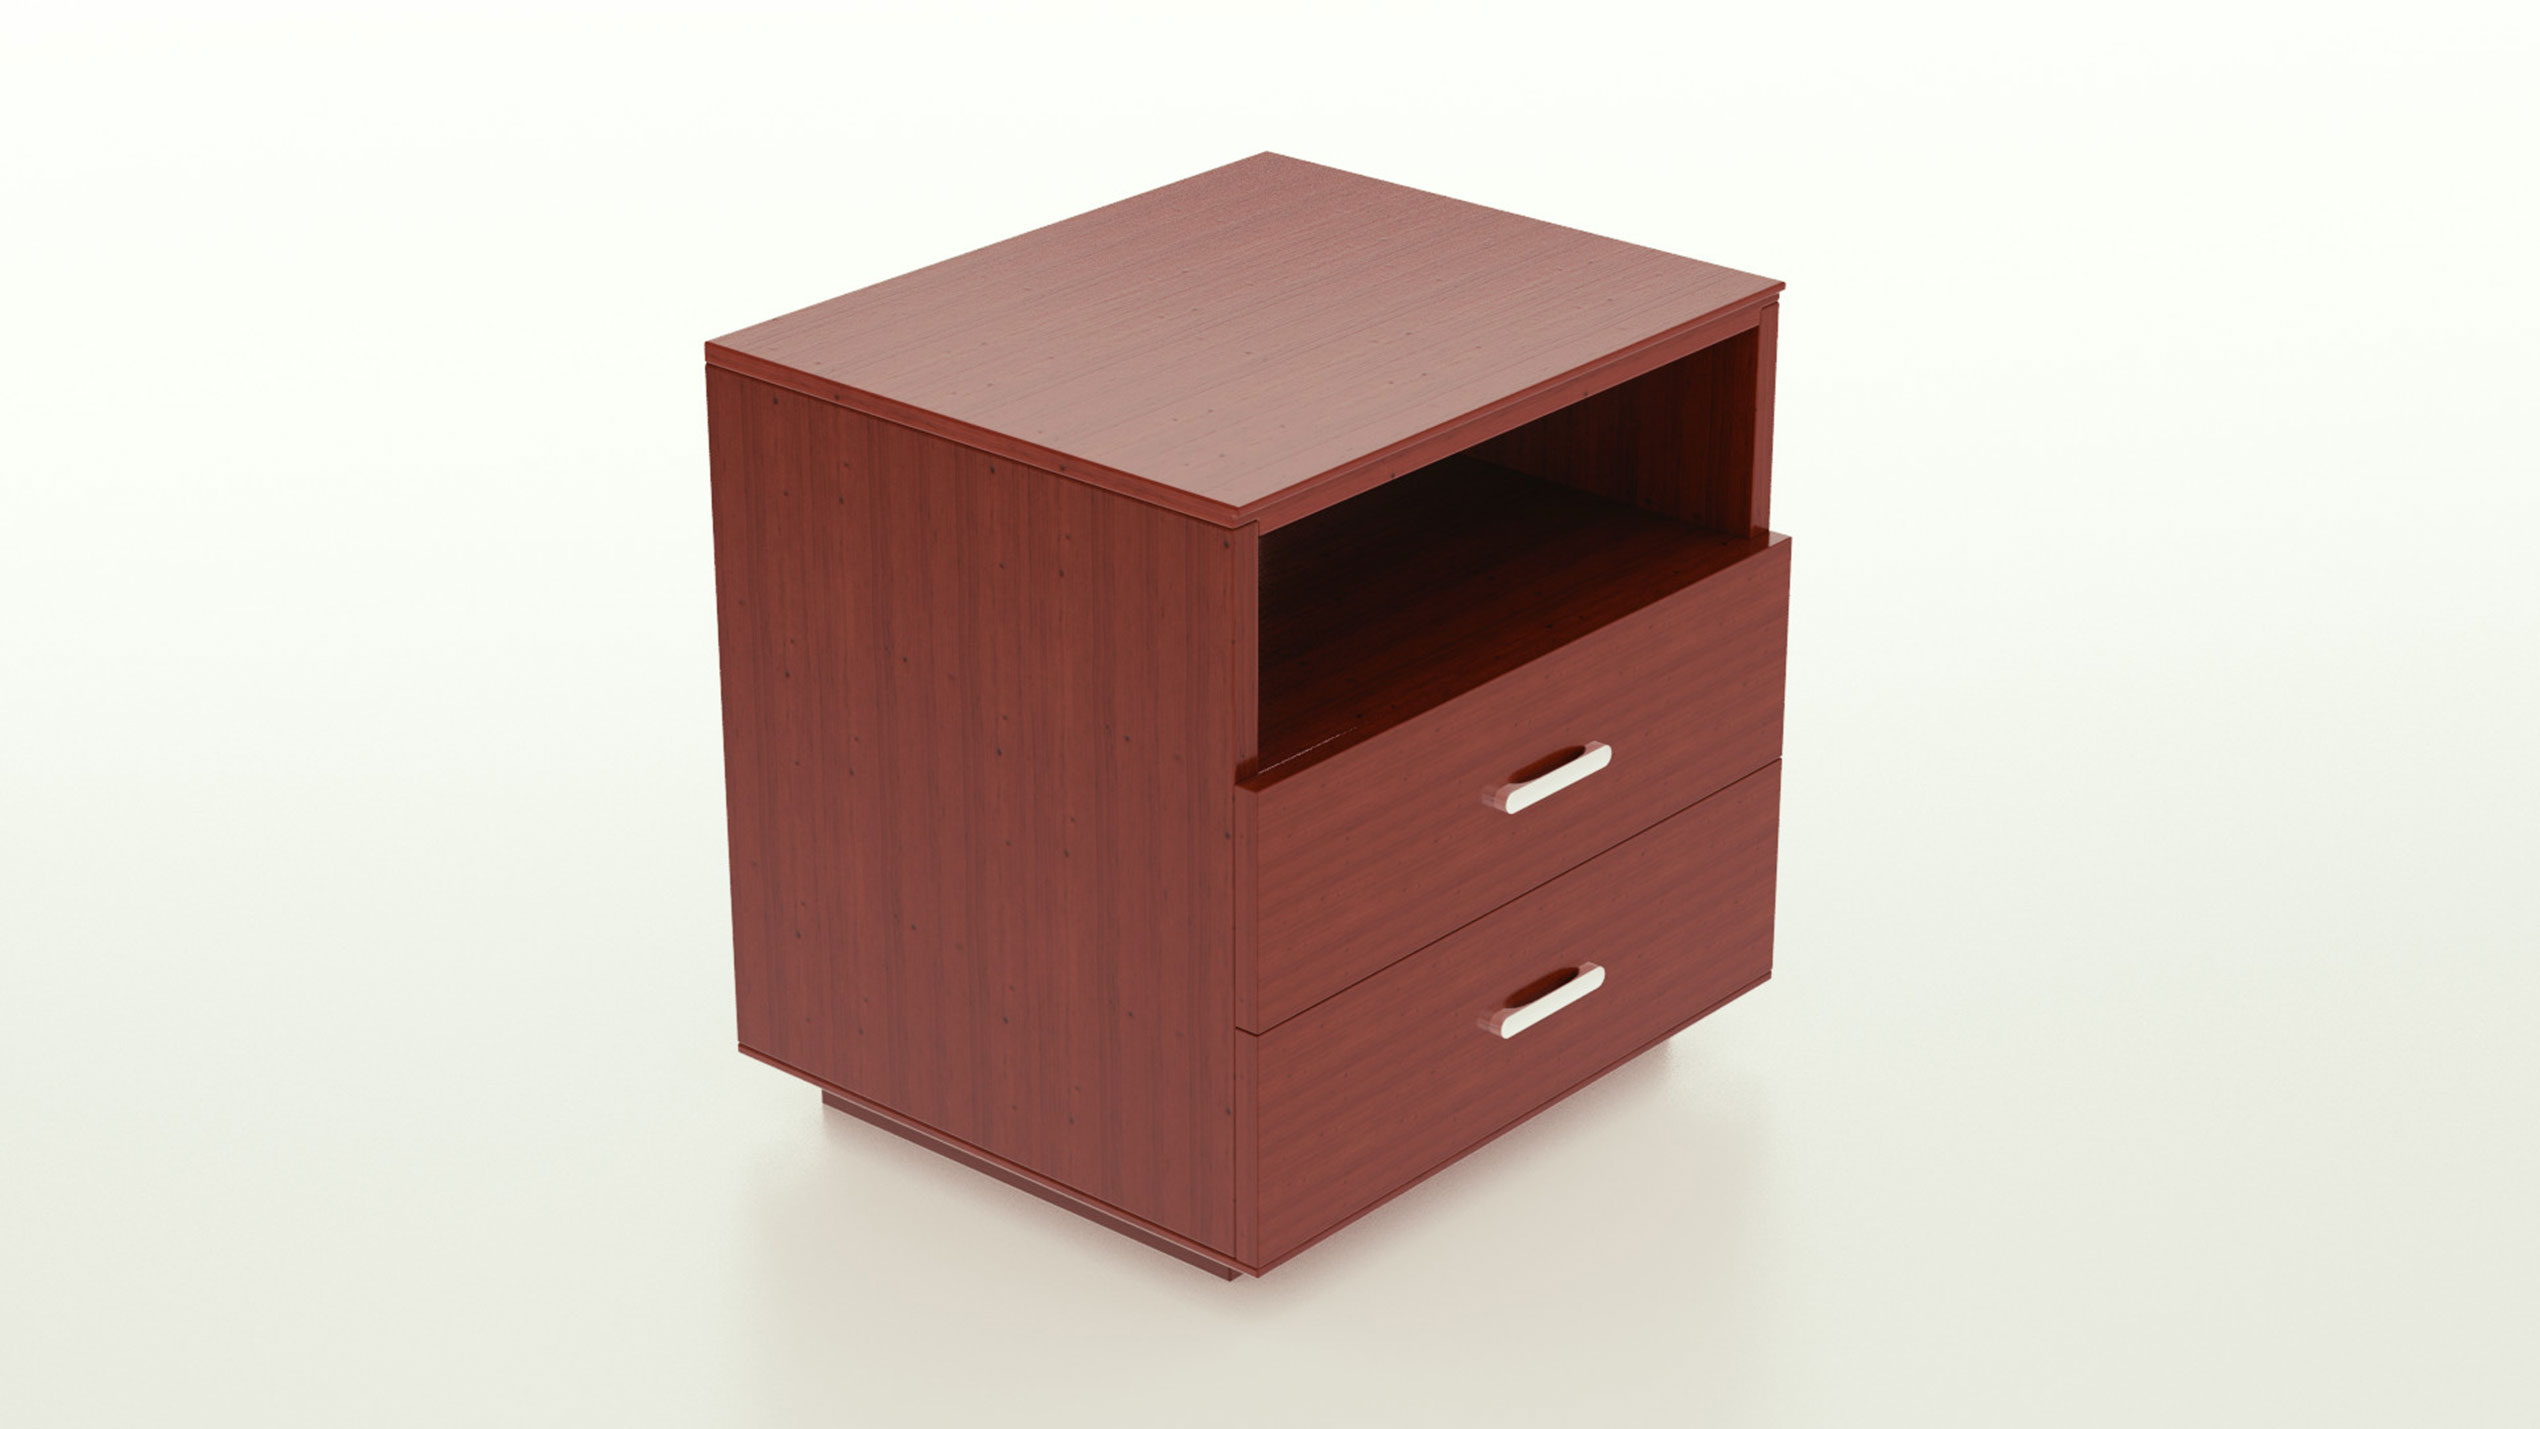 The Waldeck nightstand from Quagga Designs